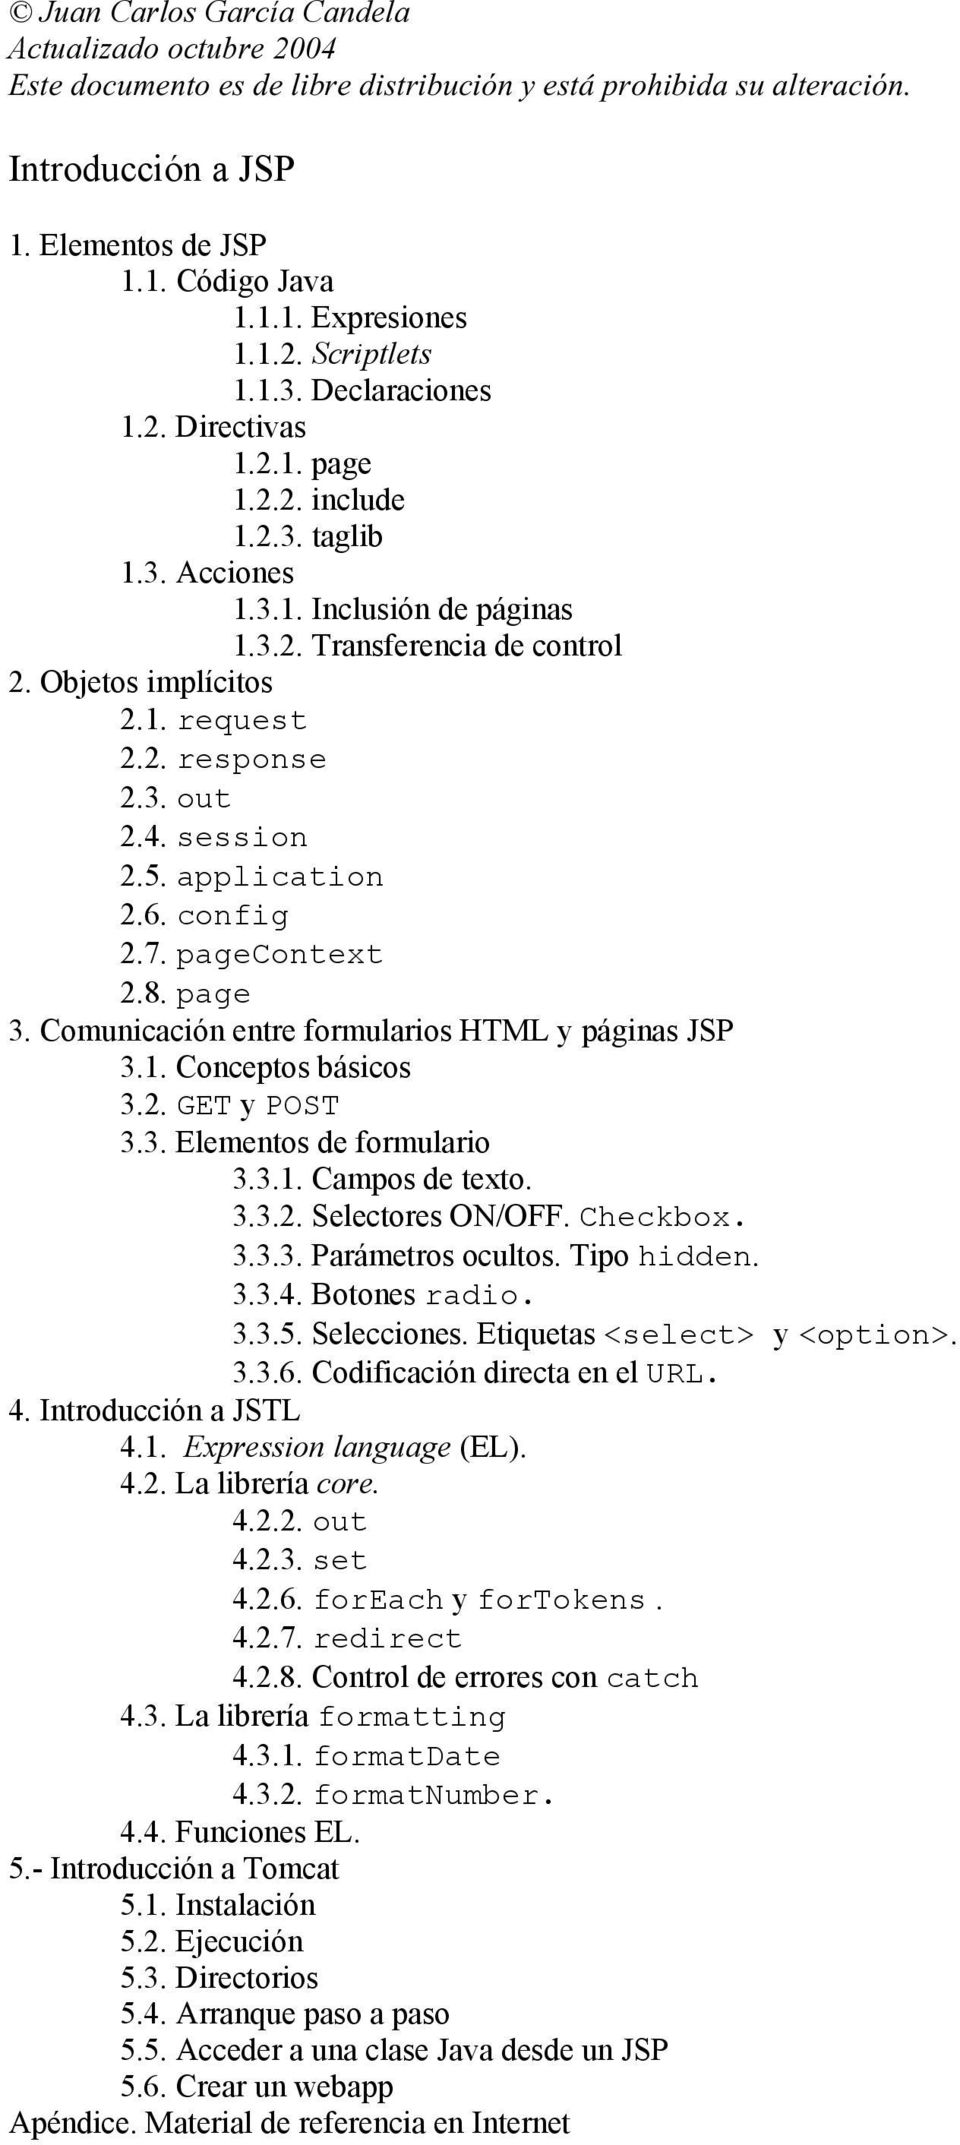 2. response 2.3. out 2.4. session 2.5. application 2.6. config 2.7. pagecontext 2.8. page 3. Comunicación entre formularios HTML y páginas JSP 3.1. Conceptos básicos 3.2. GET y POST 3.3. Elementos de formulario 3.